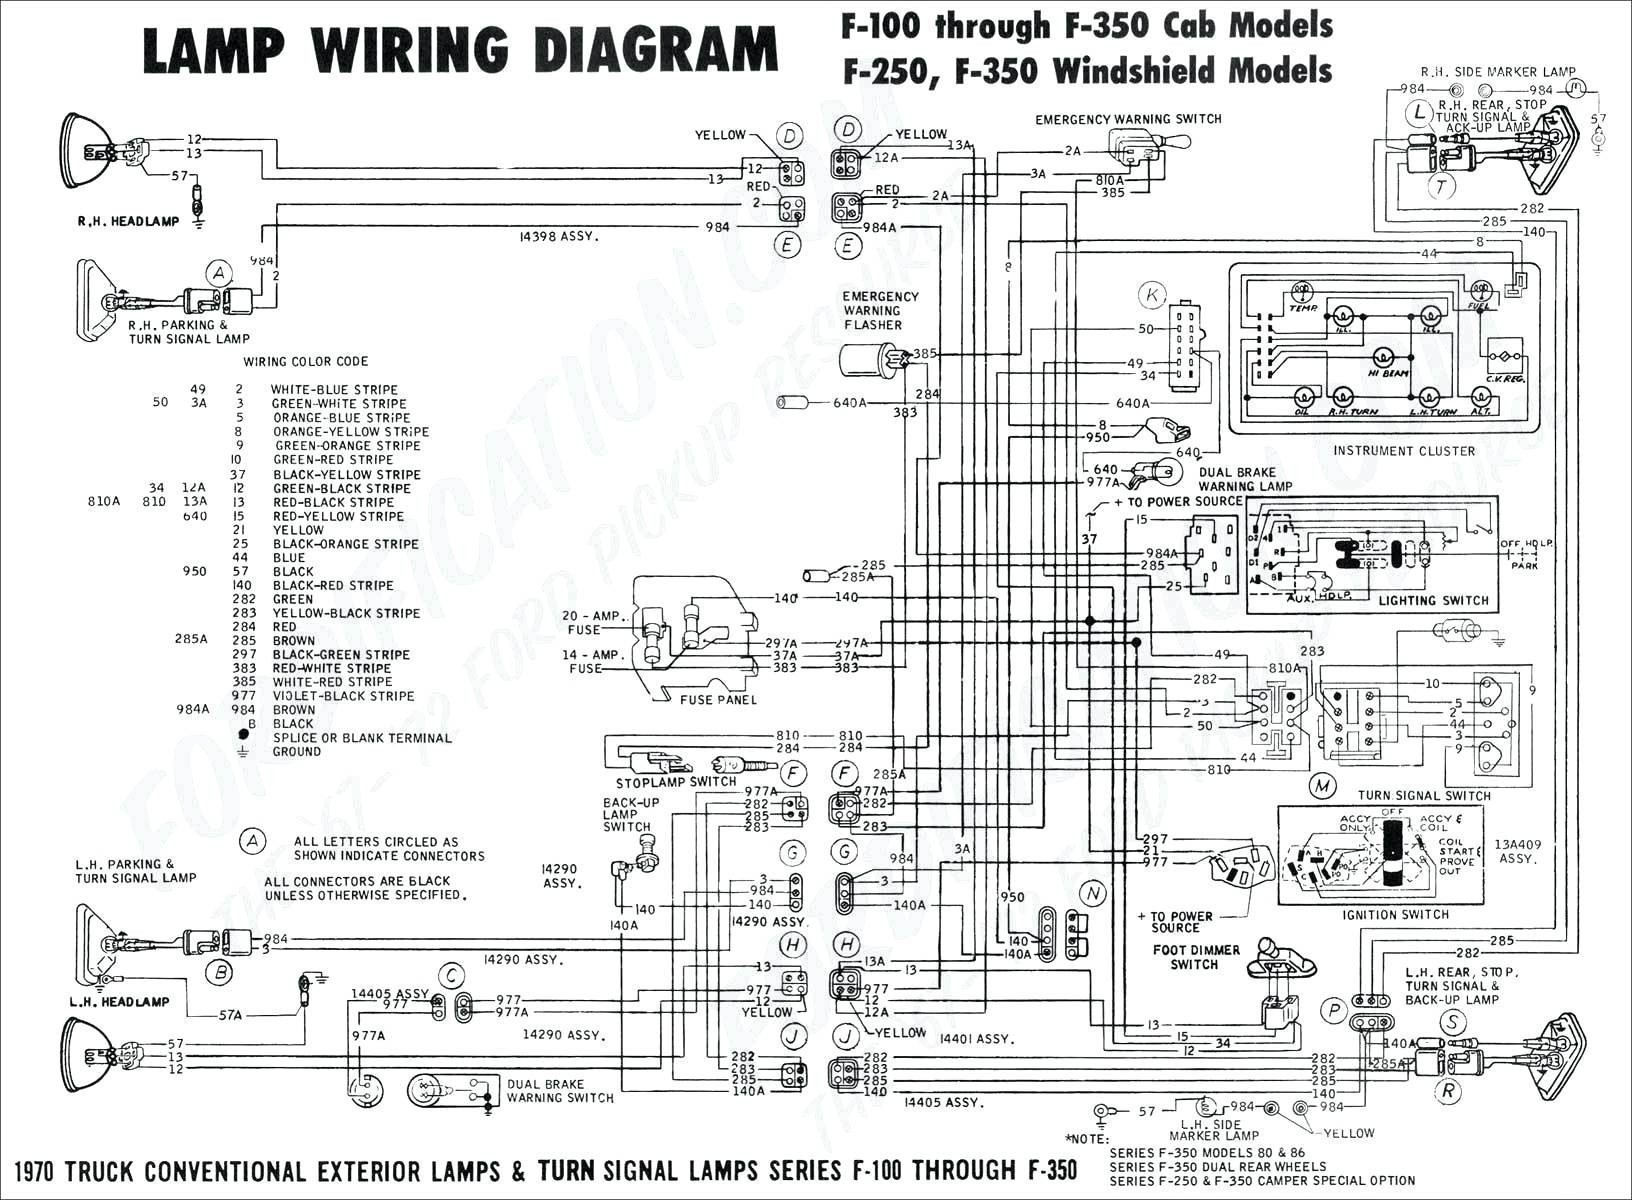 Power Steering Diagram Refrence Wiring Diagram Alternator Warning Light Of Power Steering Diagram